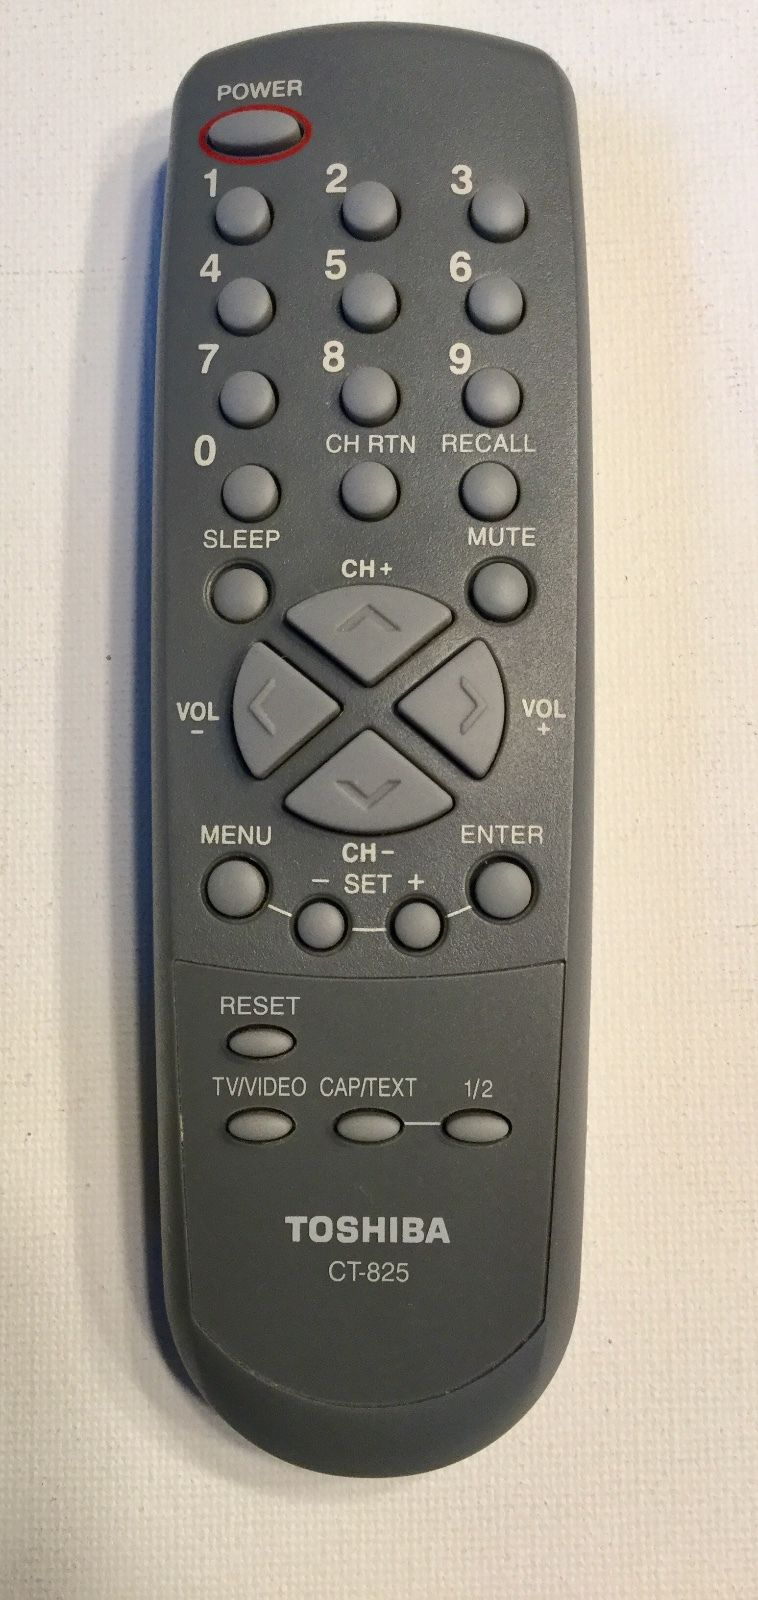 CT-825 Toshiba TV Remote Control front